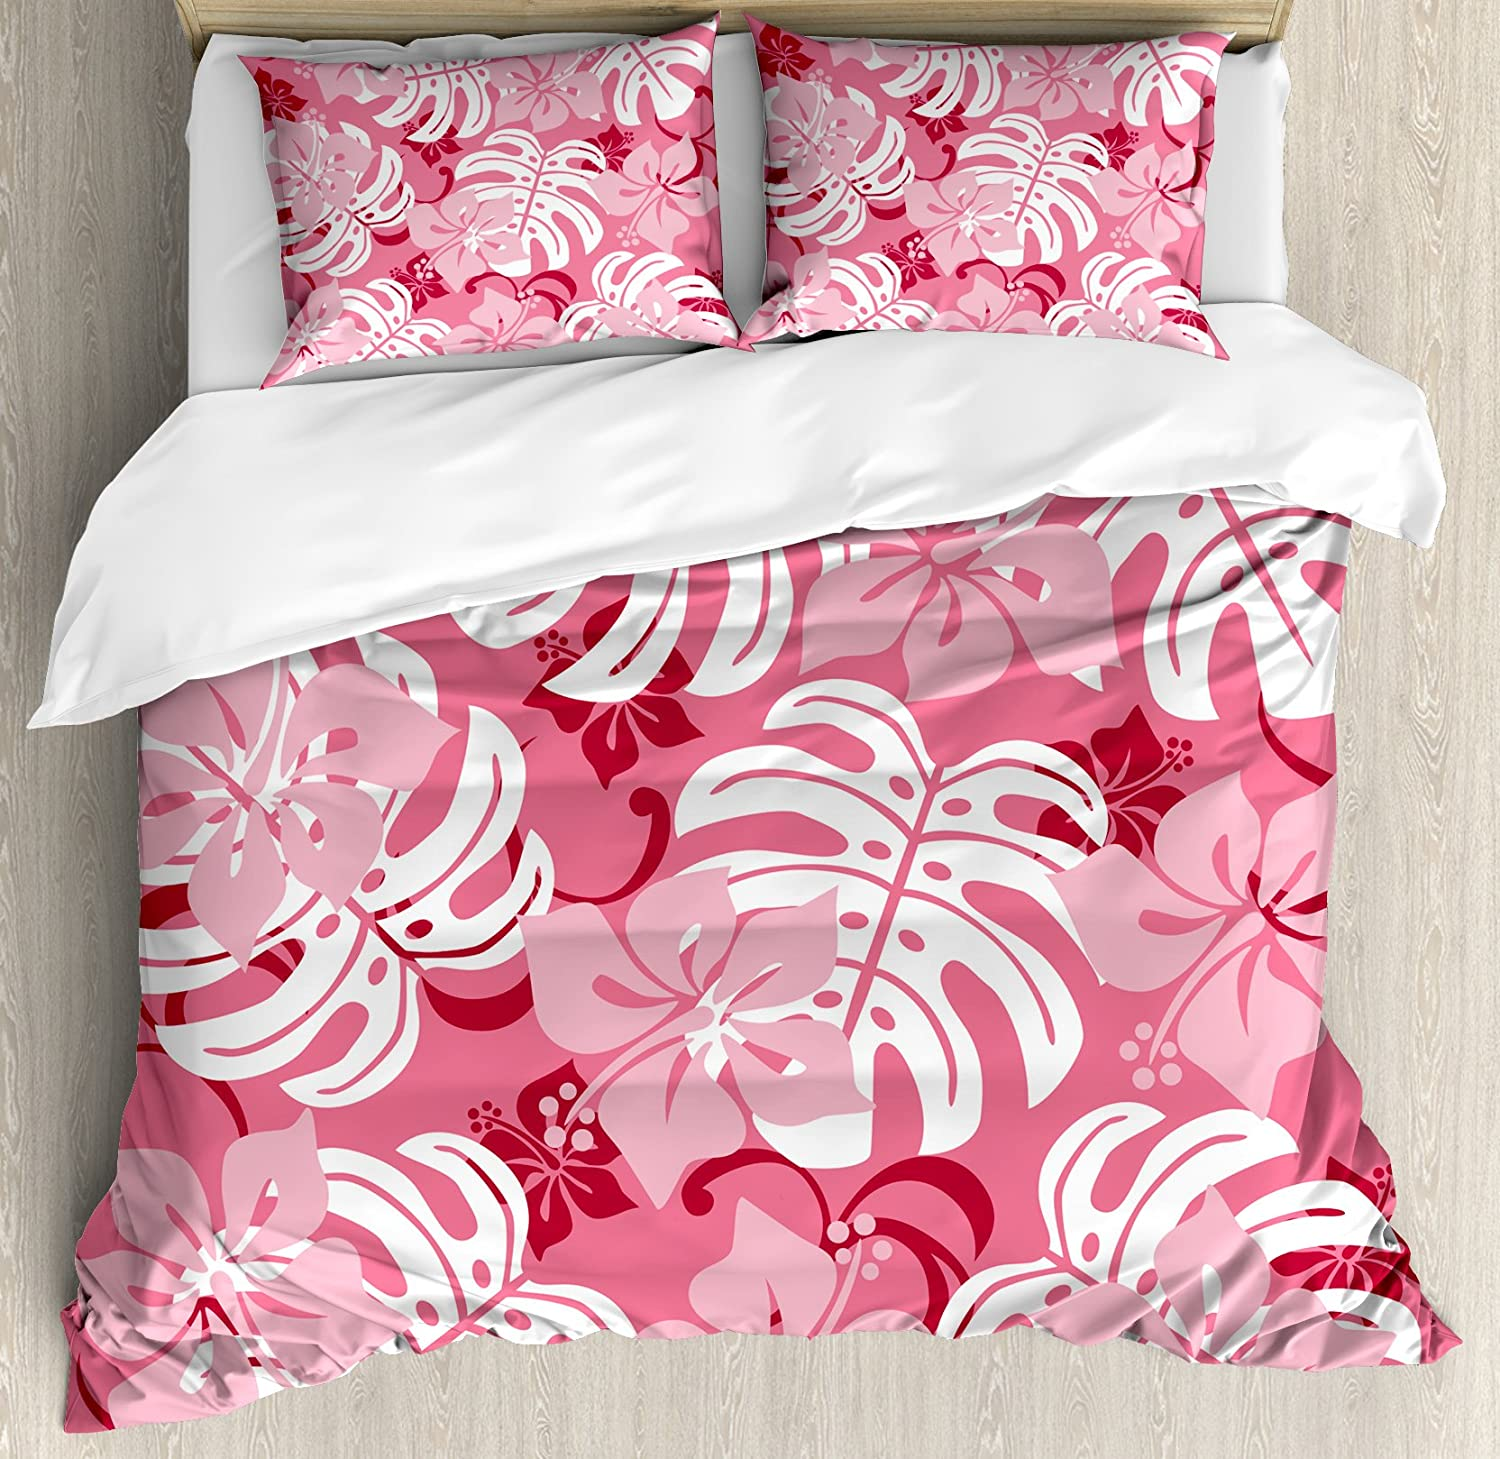 Ambesonne Luau Duvet Cover Set, Hibiscus Flower with Monstera Leaves Rainforest Plants Fresh Nature Motif, Decorative 3 Piece Bedding Set with 2 Pillow Shams, Queen Size, White Pink